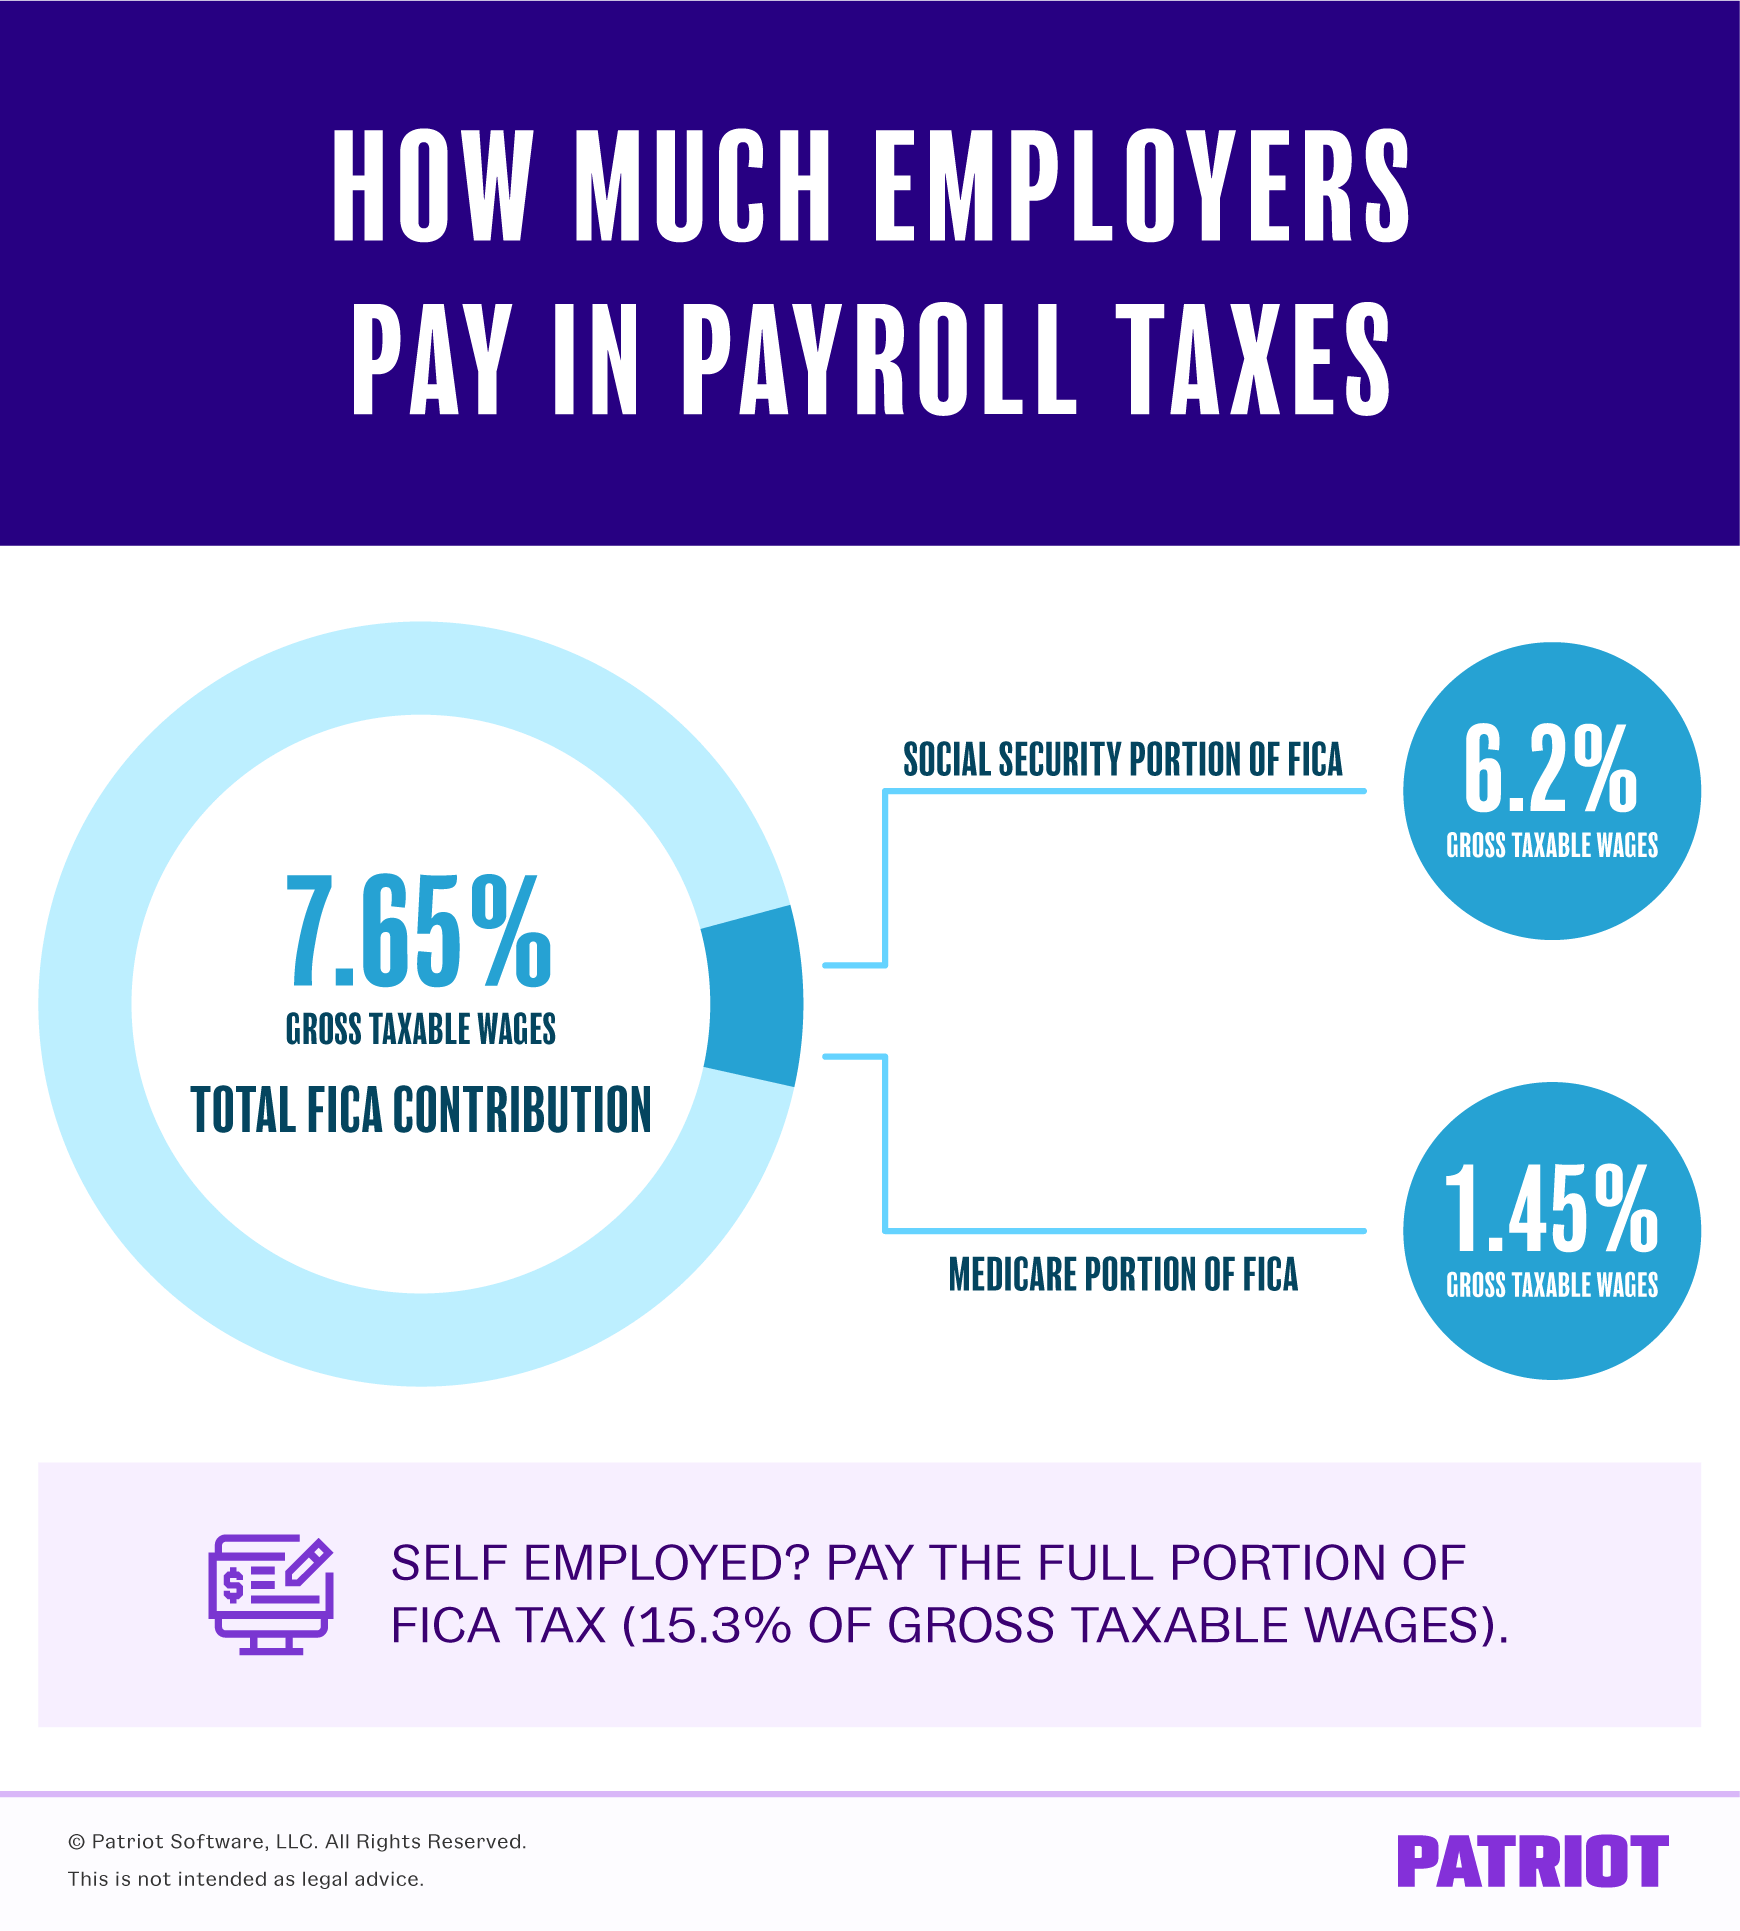 How much employers pay in payroll taxes is 7.65% of gross taxable wages for the total FICA contribution. The Social Security portion of FICA is 6.2% of gross taxable wages. The Medicare portion of FICA is 1.45% of gross taxable wages. Self-employed? Pay the full portion of FICA tax, which is 15.3% of gross taxable wages.